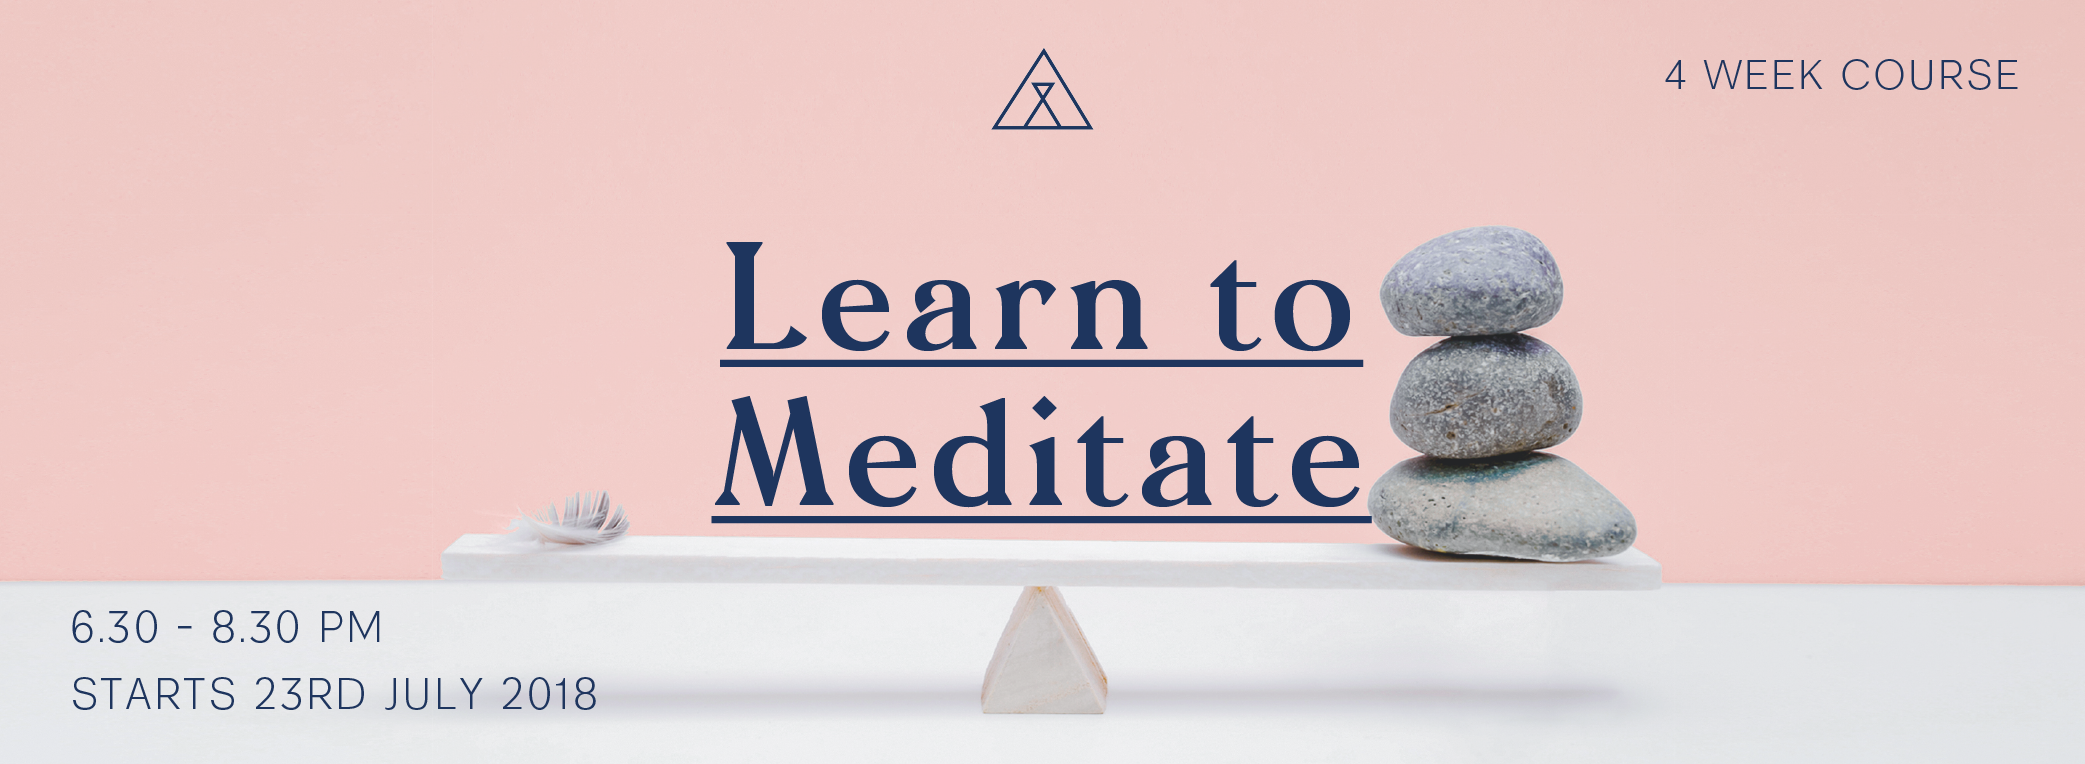 Learn to Meditate_Web Header2